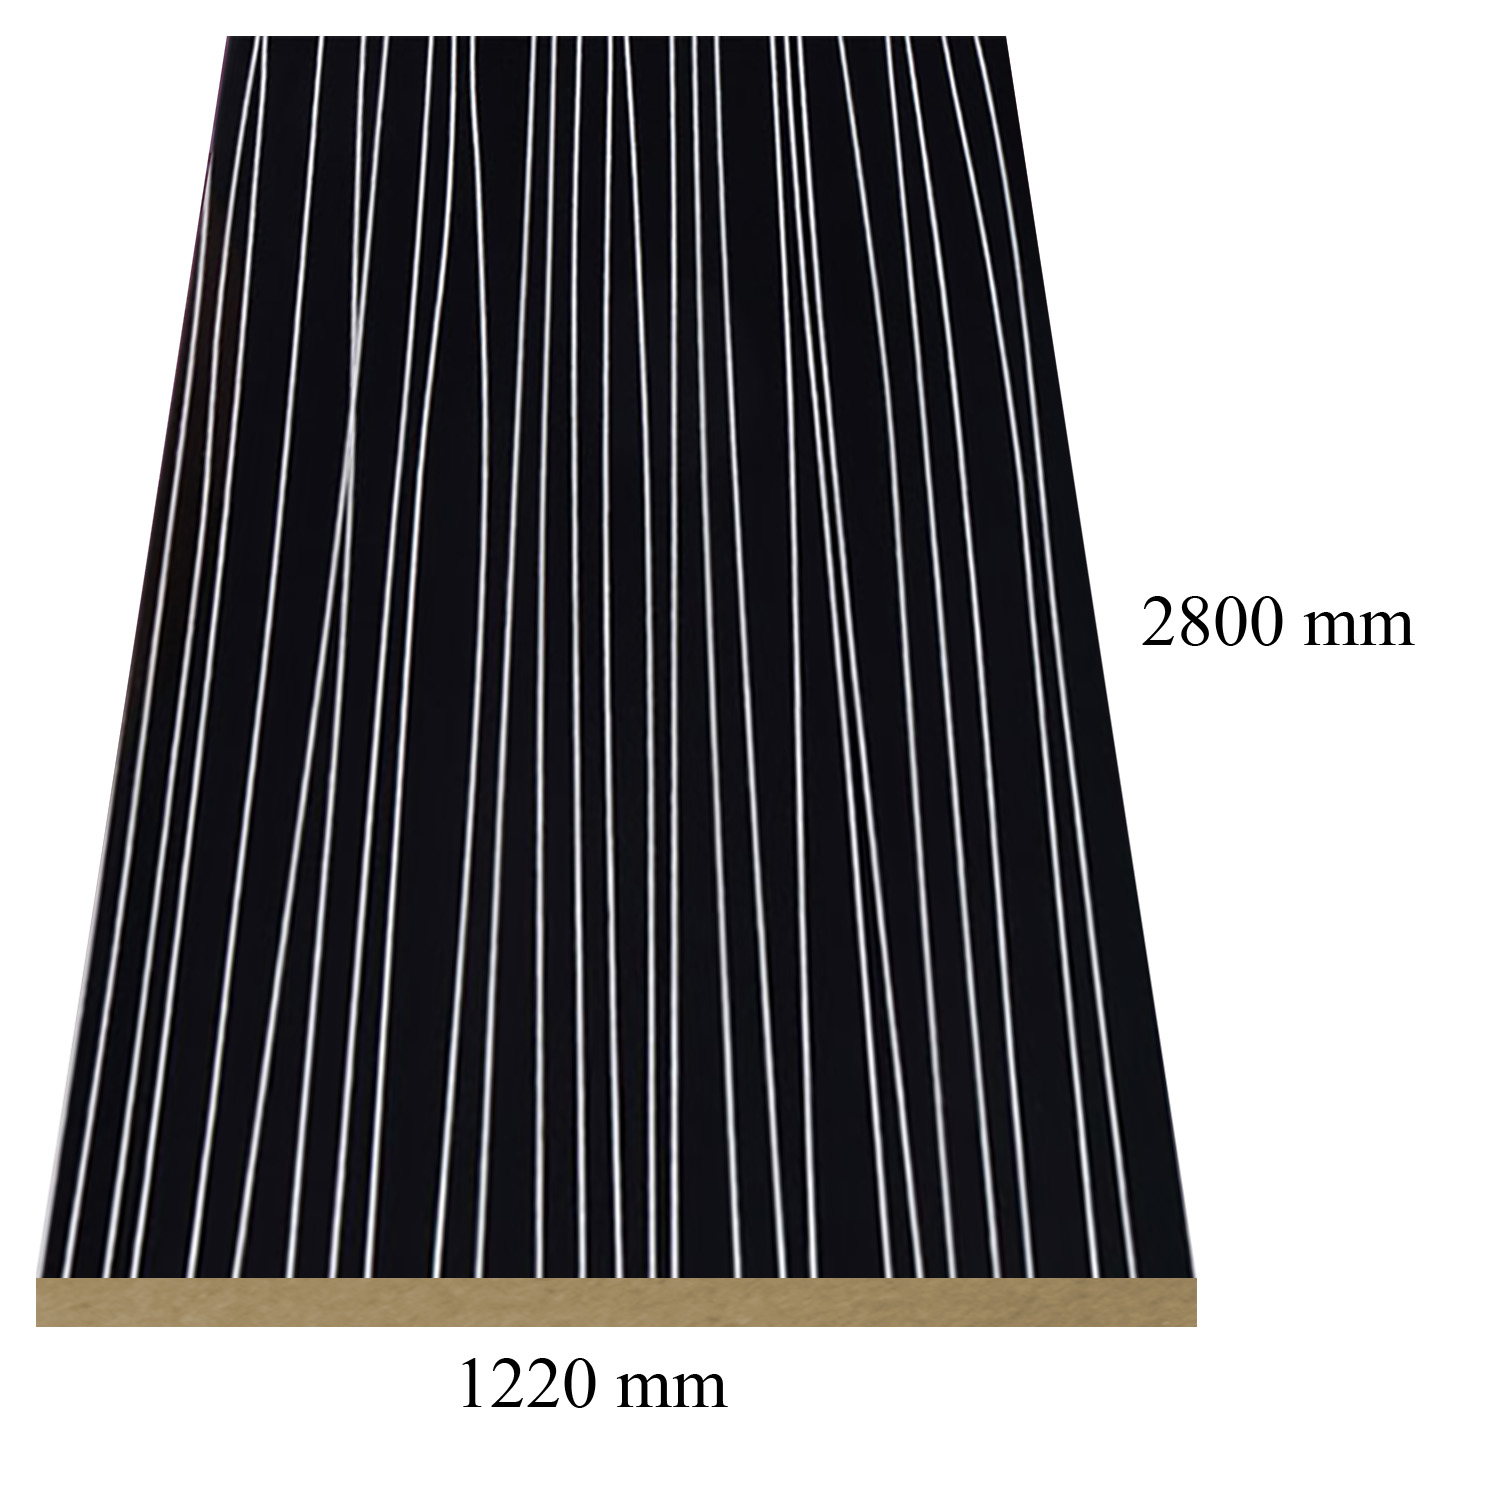 2 — 6150 Stripe Black high gloss - PVC coated 18 mm MDF